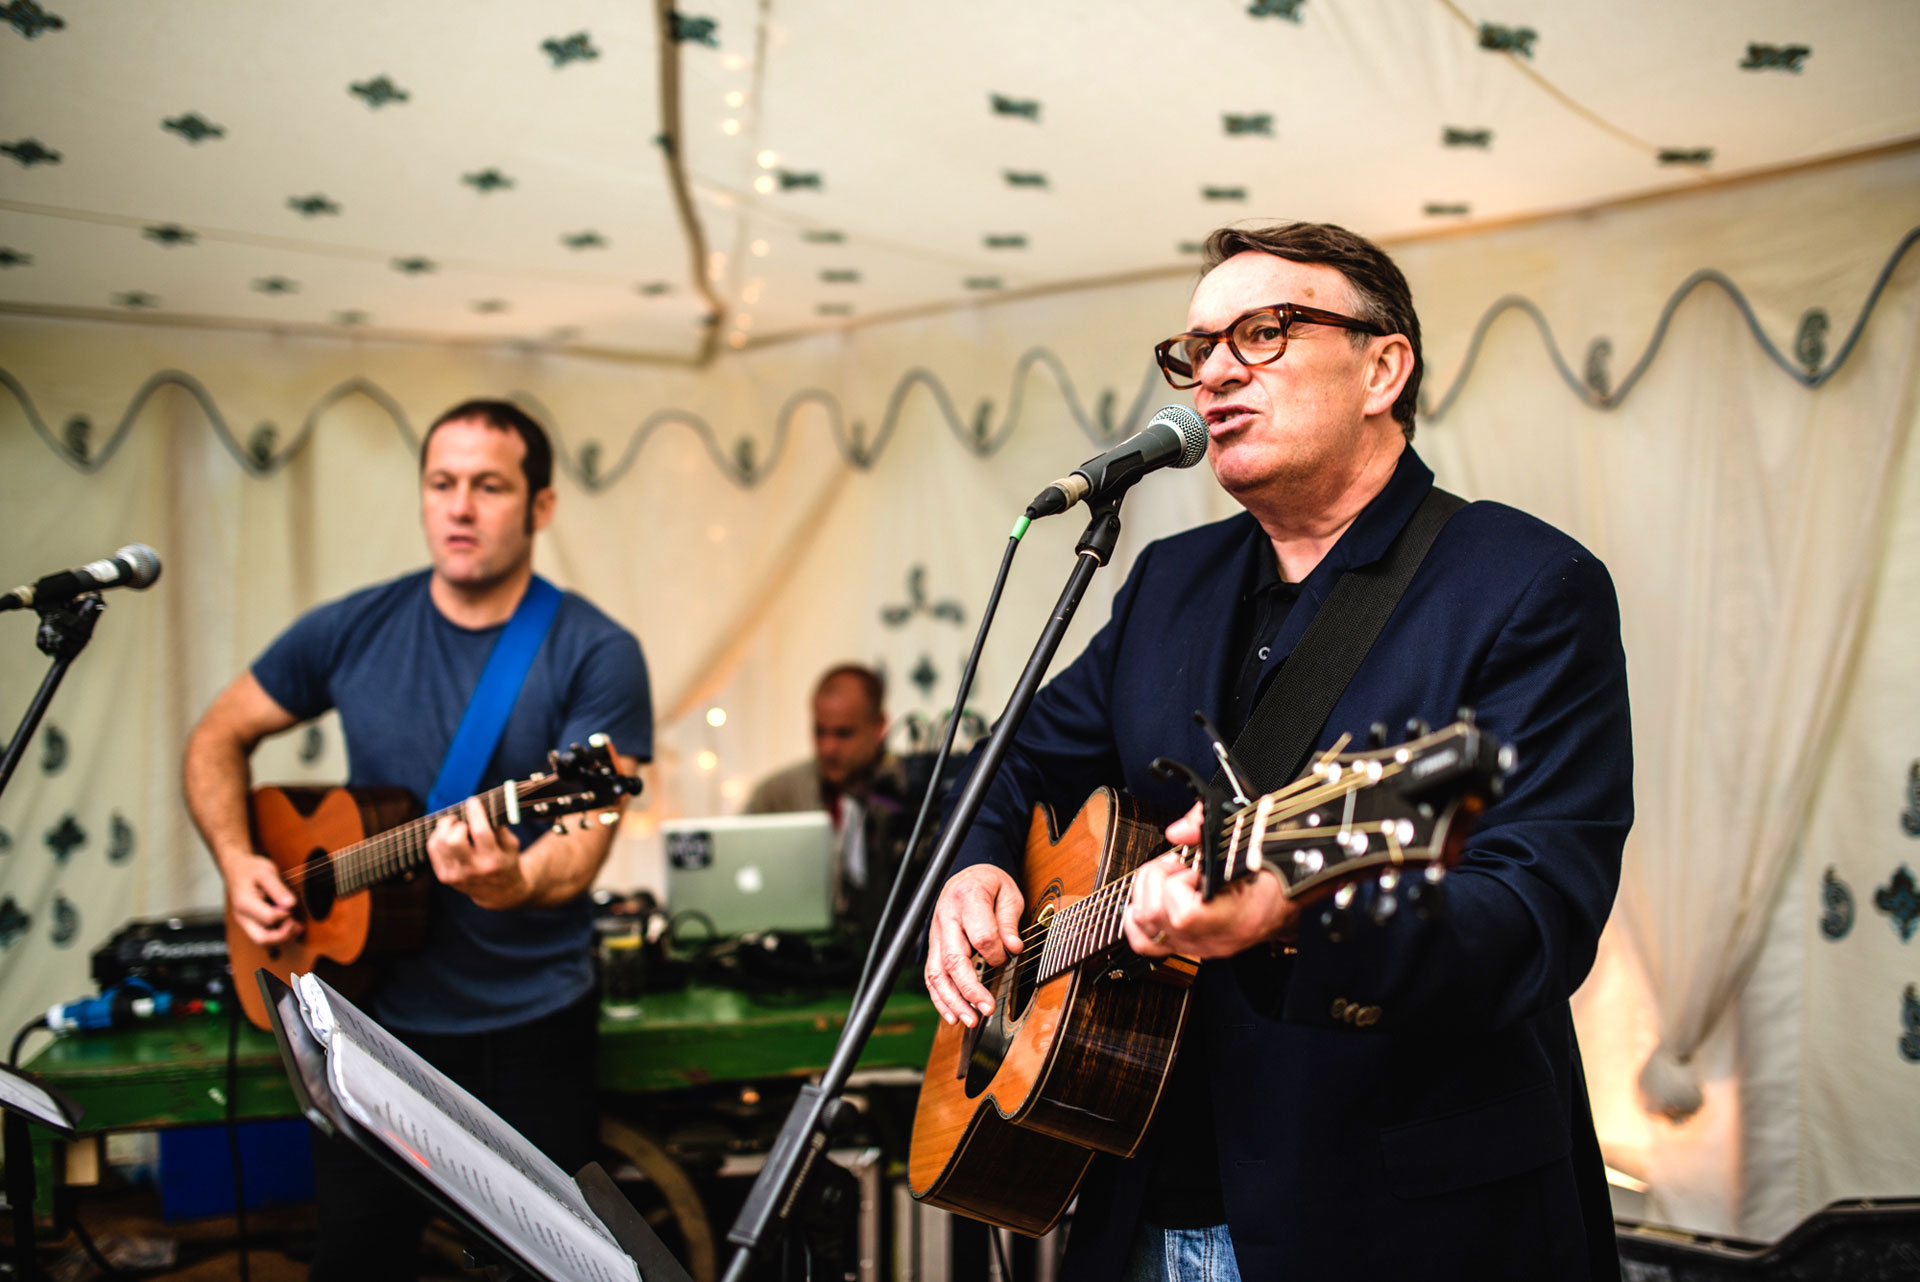 Squeeze performing a warm up gig at Pennard Orchard